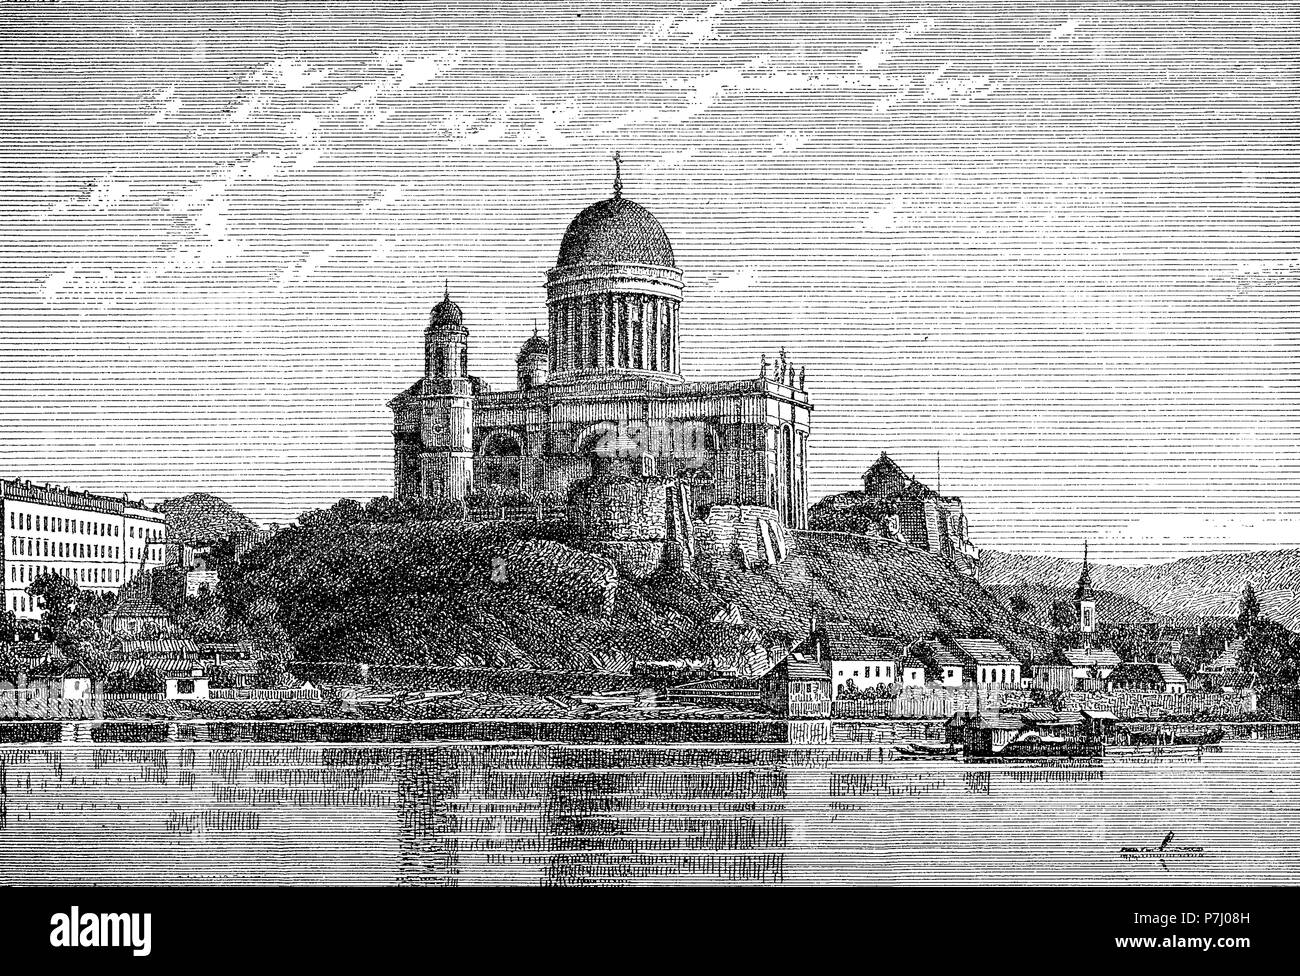 Vintage view of Esztergom cathedral on Danube river,the largest church in Hungary, monumental construction in Hungarian Classicism style built in XIX century - Stock Image